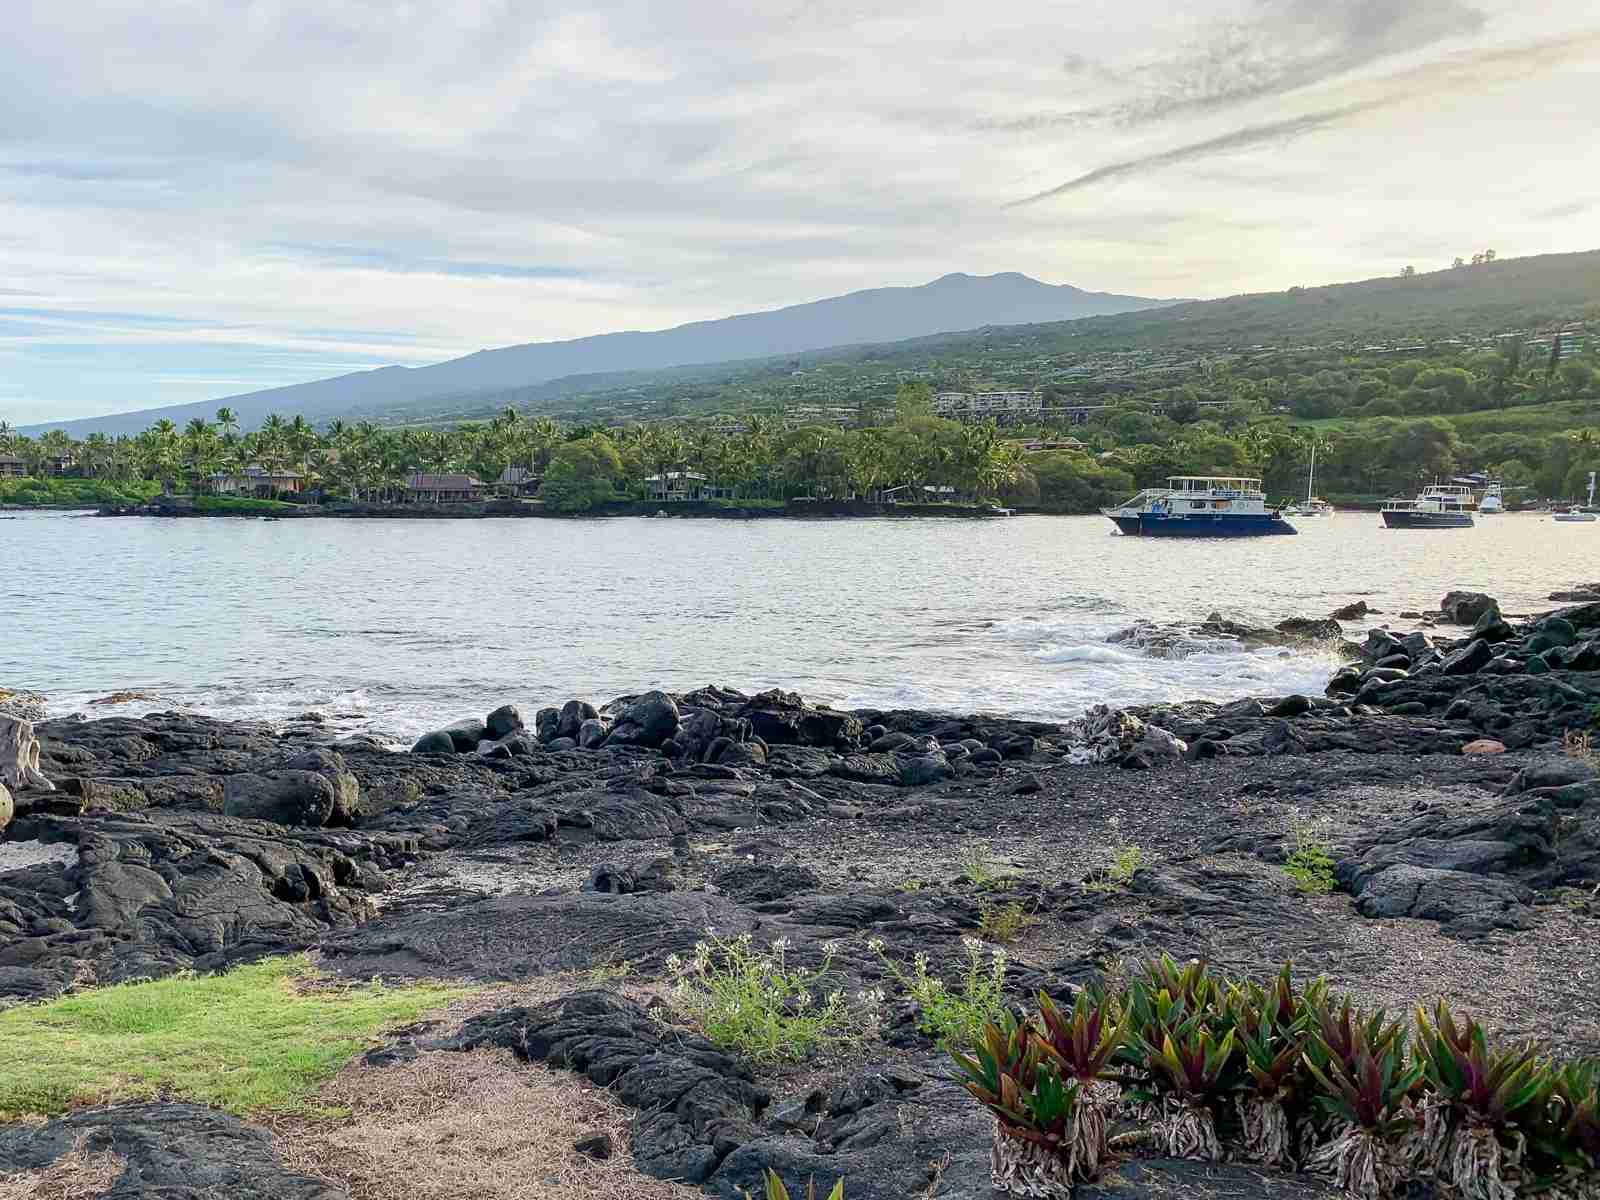 Escape to Kona (Photo by Summer Hull / The Points Guy)